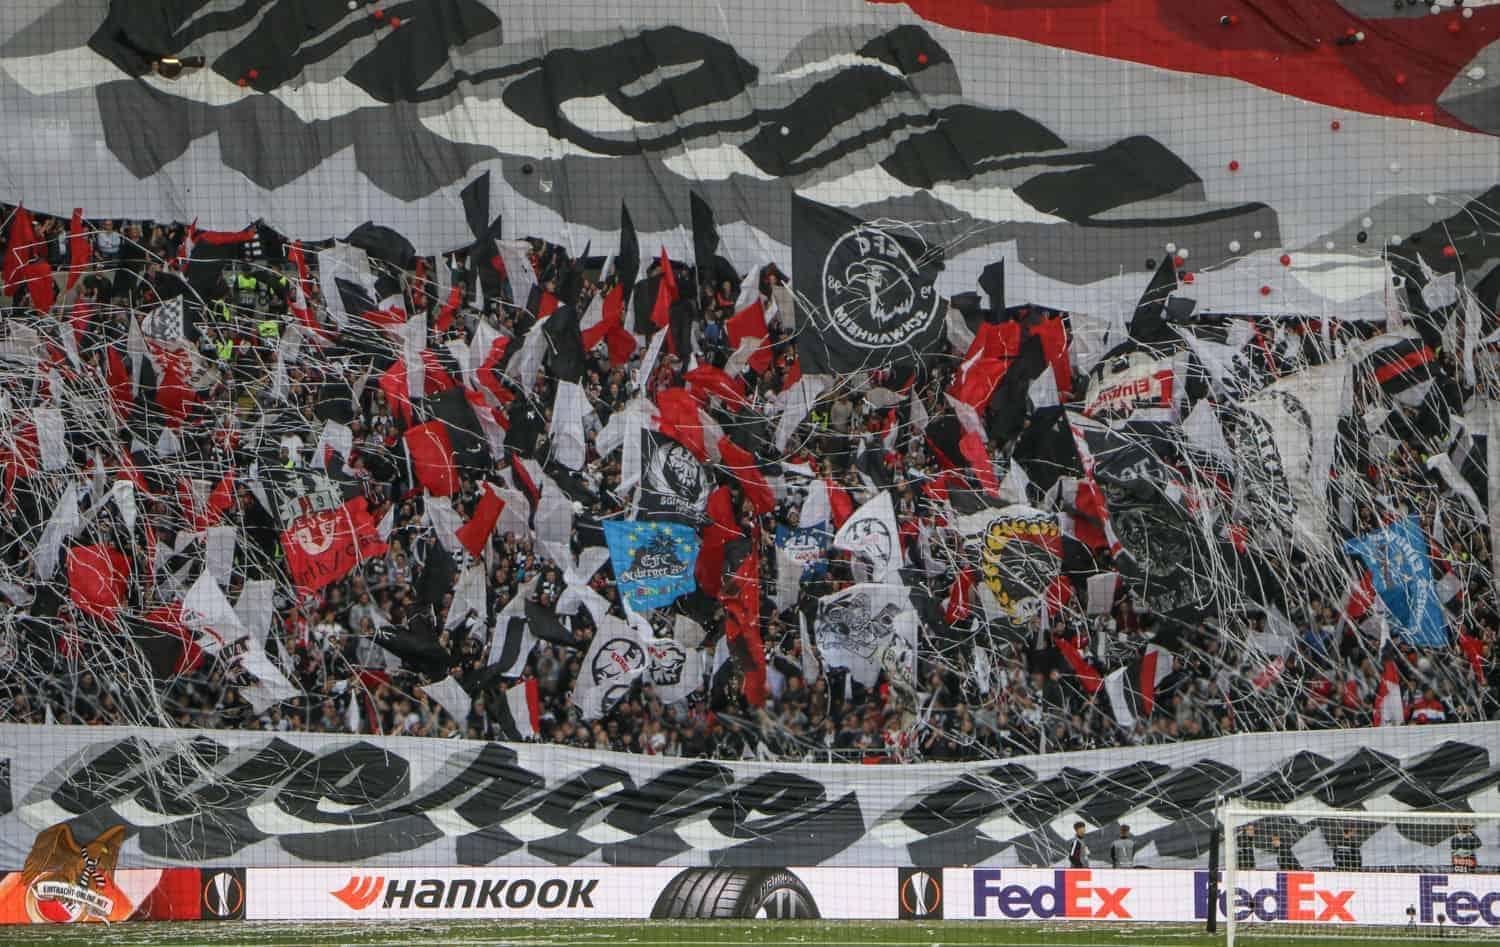 19-20-europaleague-eintracht-frankfurt-arsenal-london-12